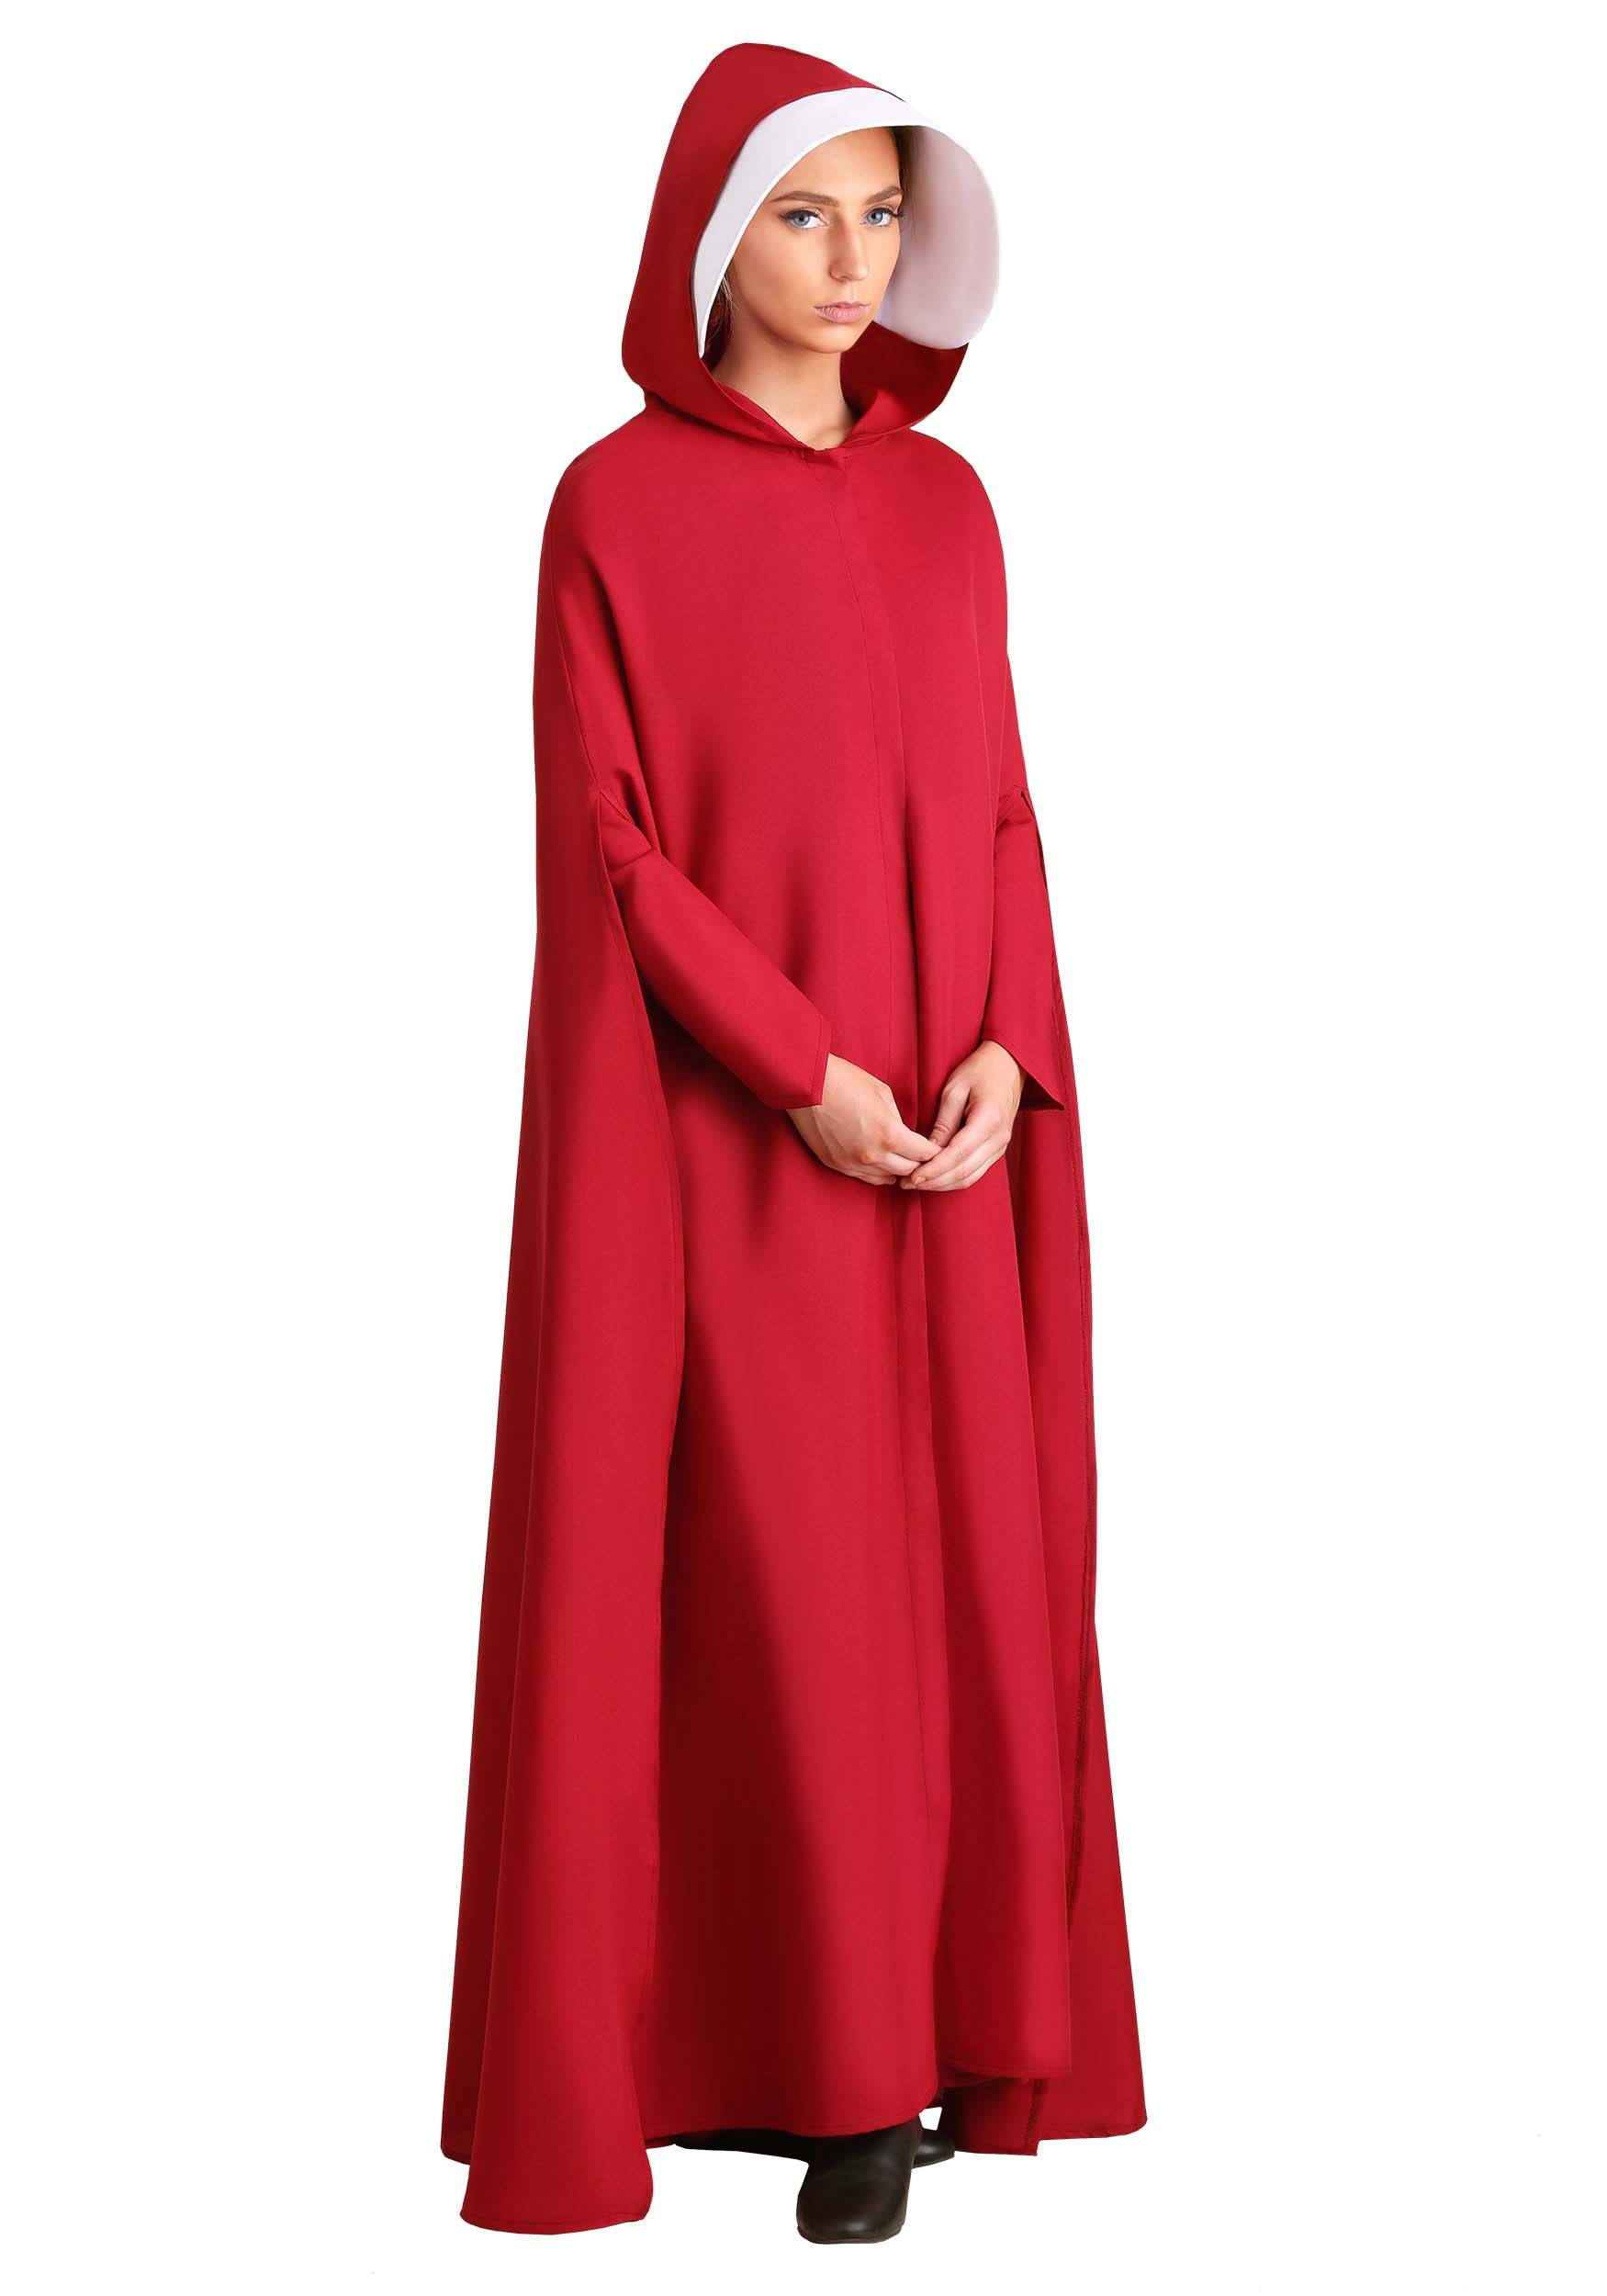 Plus Size Handmaid's Tale Costume for Women